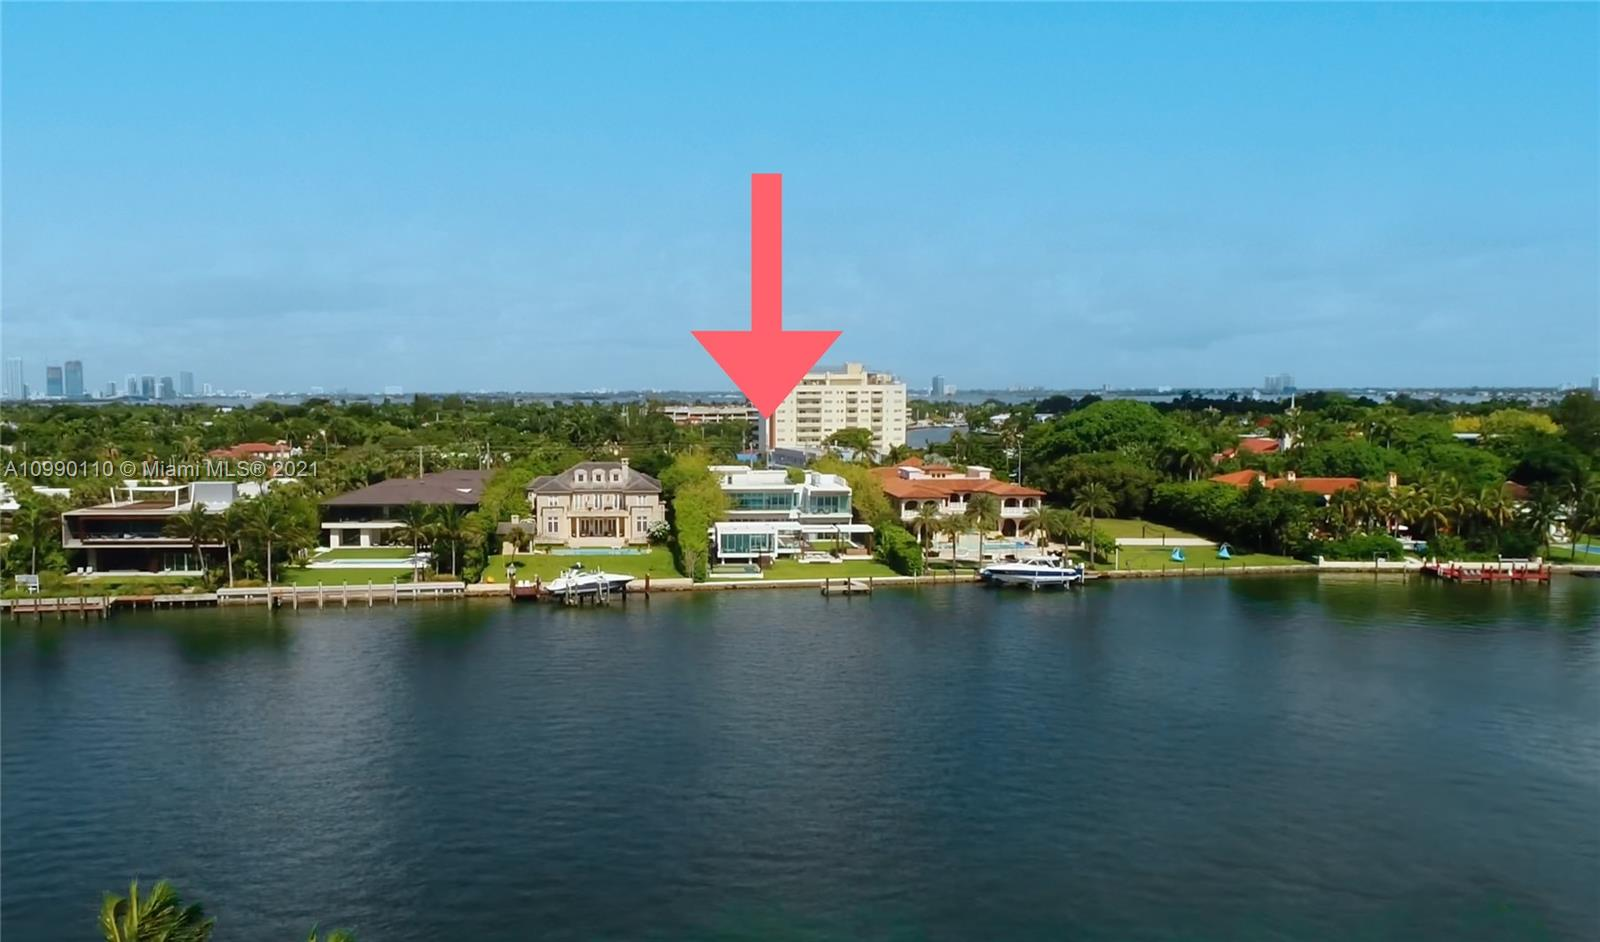 OVER 1 ACRE WATERFRONT FAMILY COMPOUND ON PINE TREE DRIVE WHERE MENIN HOMES GOES MODERN FOR THE 1ST TIME IN COLLABORATION WITH RENOWNED SWEDISH-MEXICAN DESIGNER ALEXANDER DIAZ OF ATRA FORM! Delivering Late Summer 2021. Estate Sits on Wide Portion of Intercoastal. 13,178 SF w/ 9 Beds, 9 Baths + 3 Powder Rooms. Stunning 3x7 FT Italian Seashell Stone Floors T/O. Open Living Area w/ Fluted Travertine Floating Fireplace. Chef's Kitchen w/ Calacatta Gold Marble Countertops + Wolf, Miele & SubZero Appliances. Theater w/ Top-of-the-Line Surround Sound. Cladded Matte Bronze Staircase + Elevator. 3,000 SF Master w/ Private Pool, Gym, Sauna & Ocean Views. Rooftop w/ BBQ Grill. Deck w/ Saltwater Pool + Spa & Summer Kitchen. Glass Padel Court, Basketball Court, Outdoor Study. Smart Home Automation.